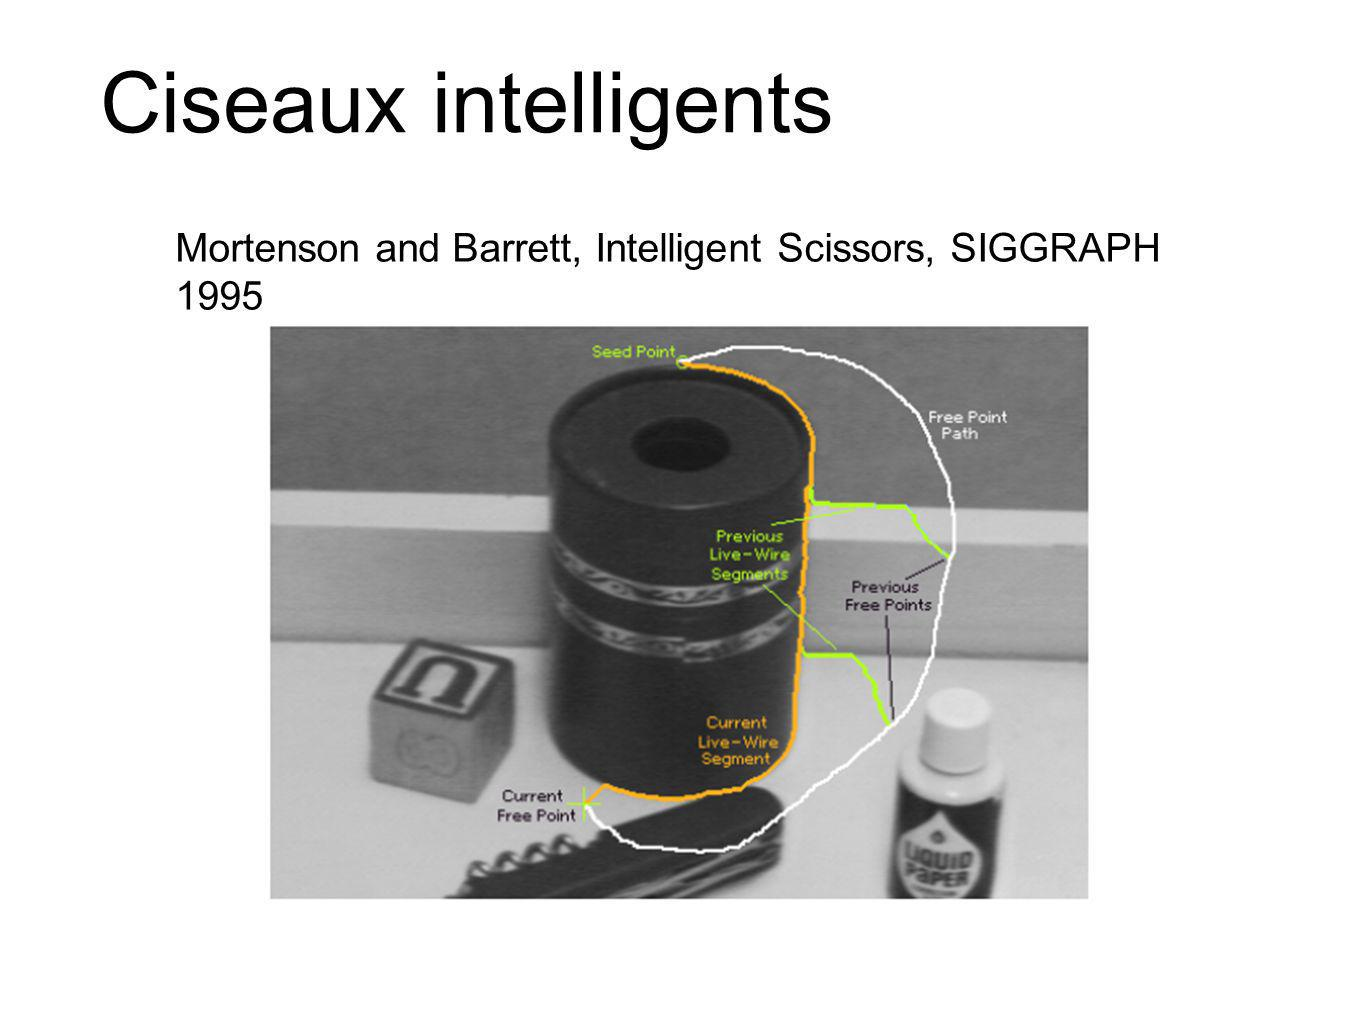 Ciseaux intelligents Mortenson and Barrett, Intelligent Scissors, SIGGRAPH 1995